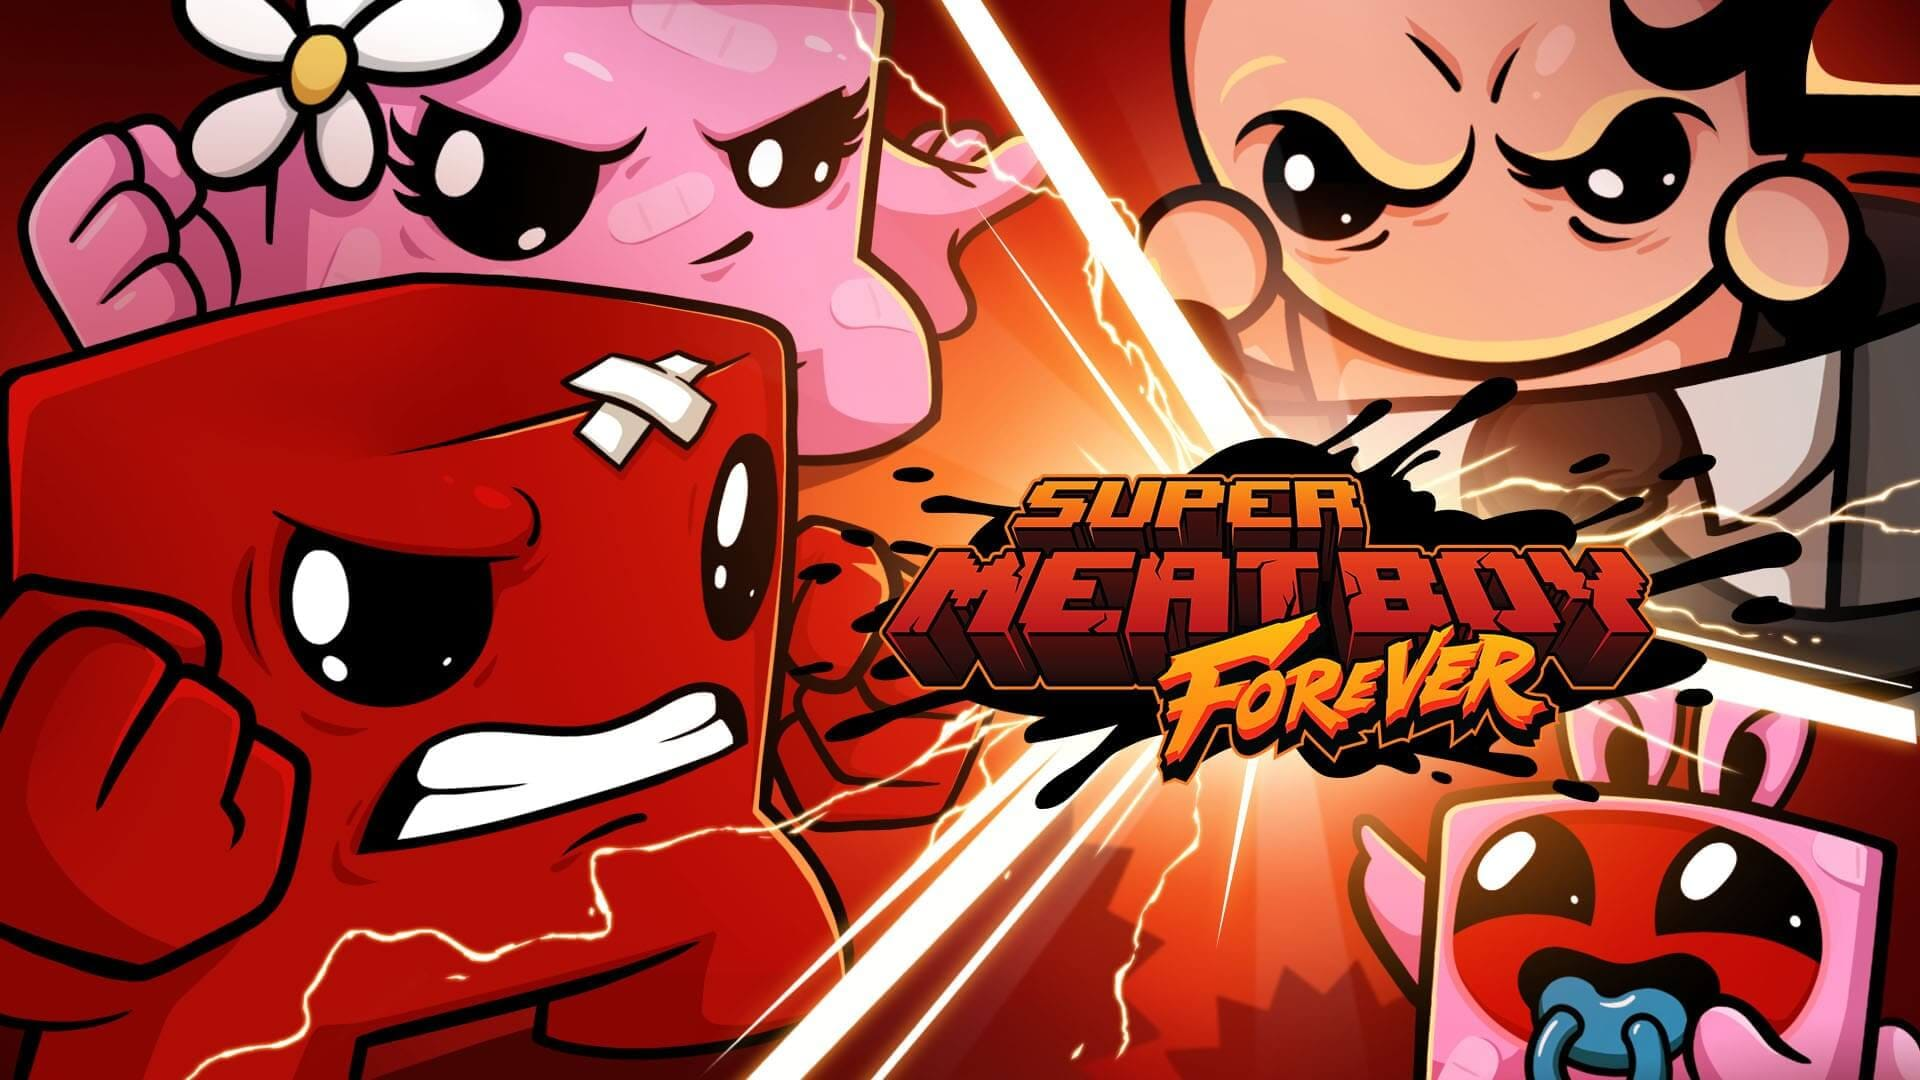 Super Meat Boy Forever Guide. How to unlock the dark world?